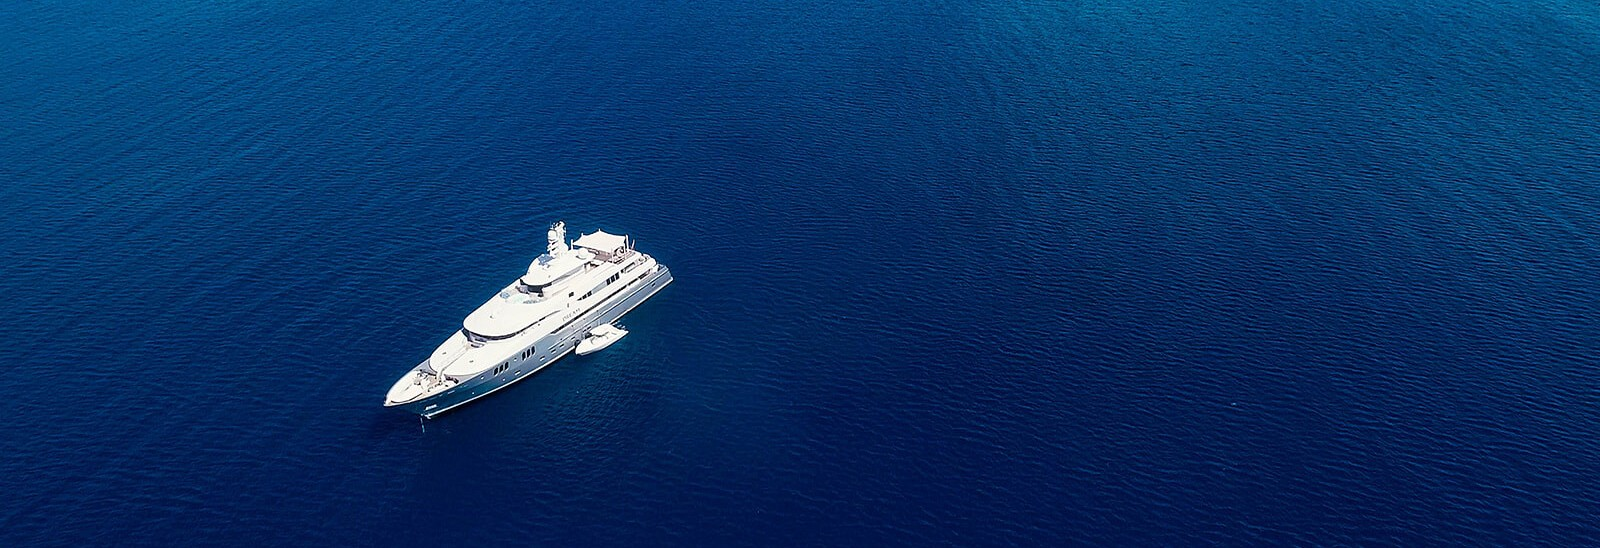 Supertoys for superyachts: the best yacht accessories money can buy